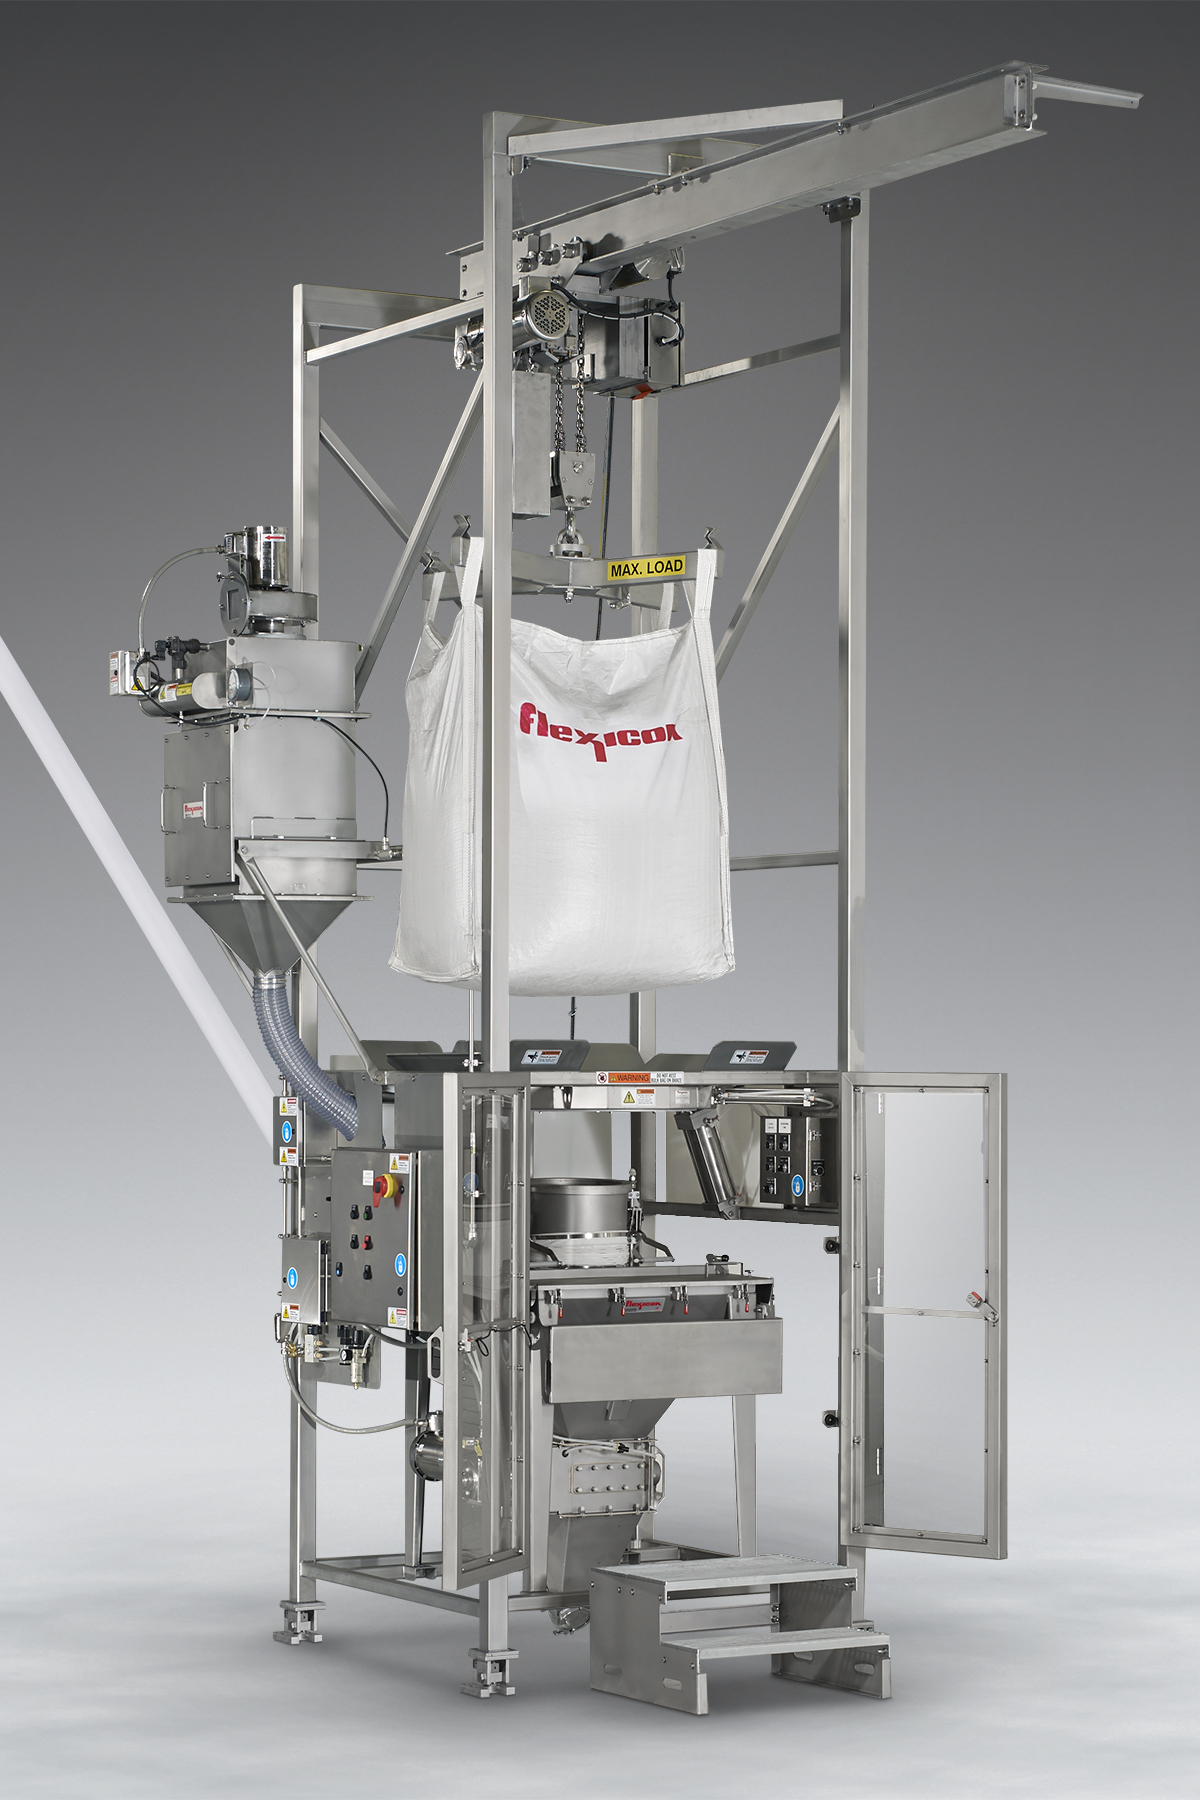 BULK-OUT® Sanitary Bulk Bag Weigh Batch Unloading System with integral flexible screw conveyor and BAG-VAC™ dust collector shown with safety interlocked doors in open position and manual dumping station bag tray in lowered position.